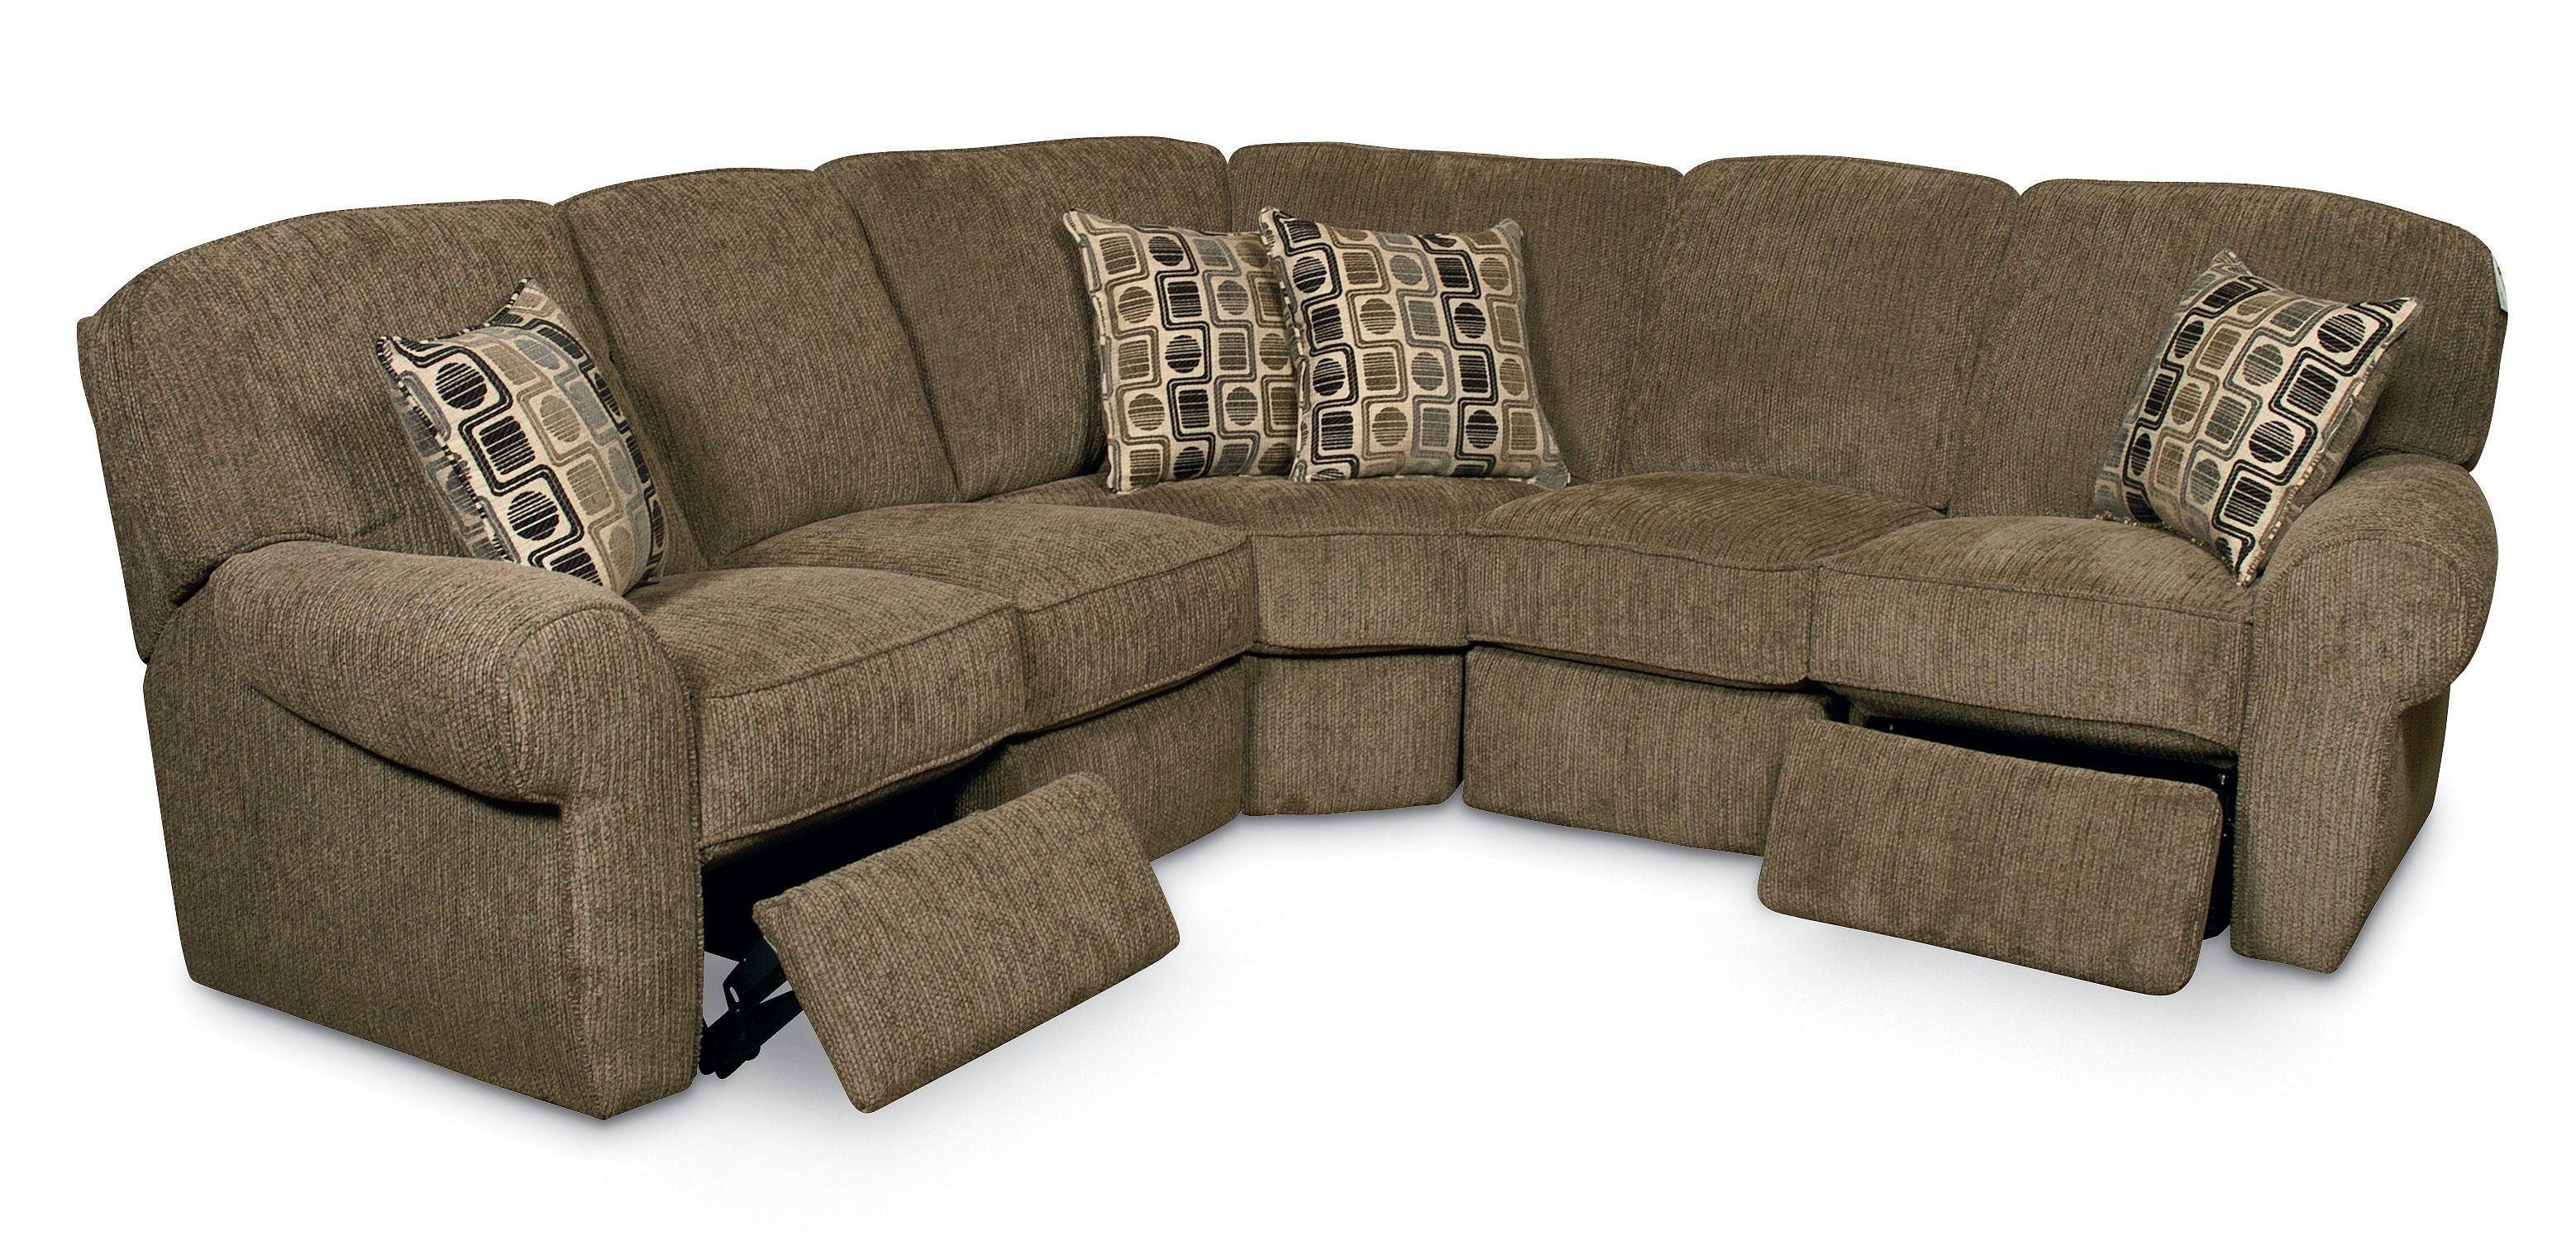 Reclinable Sectional Sofas Levin Sleeper Lane Furniture Megan Collection Features 4 Piece